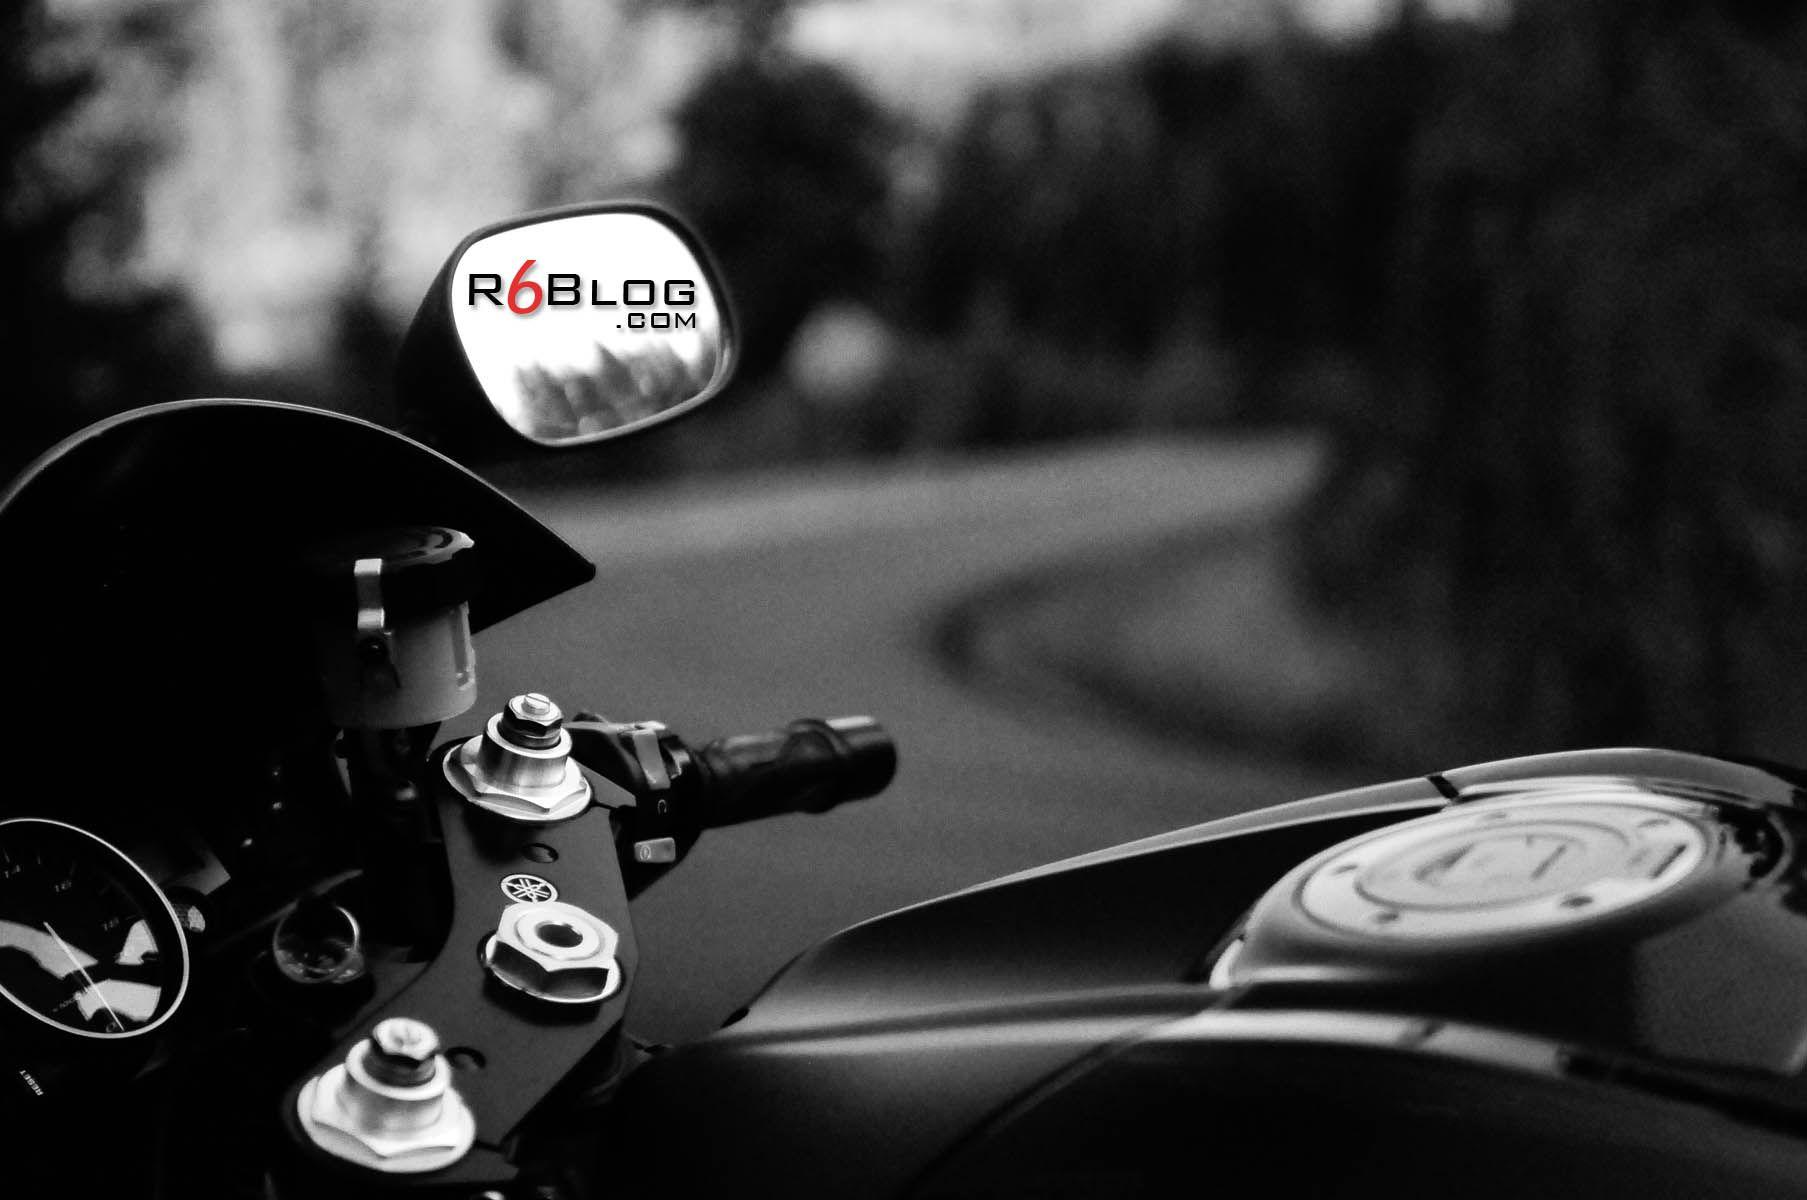 New Yamaha R6 Wallpapers From R6Blog! Yamaha R6 Wallpapers 5